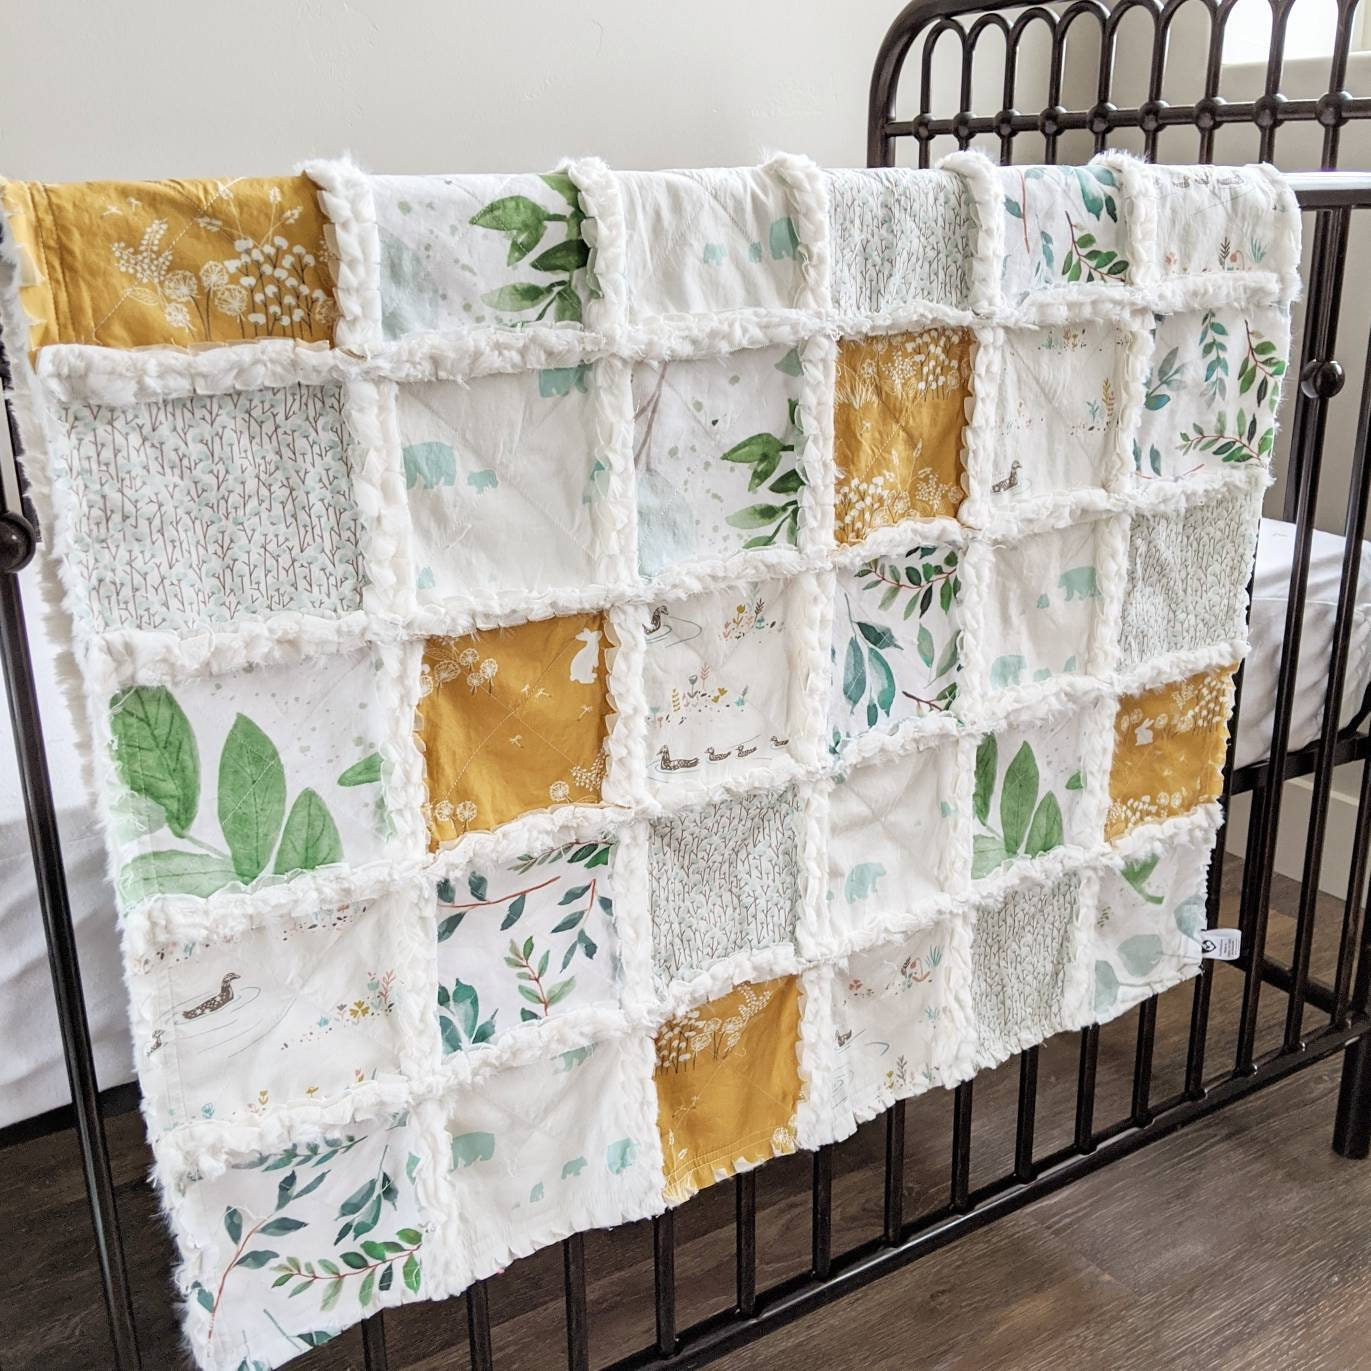 Gender Neutral Baby Quilt Greenery Baby Blanket Rag Quilt For Gender Neutral Baby Gift